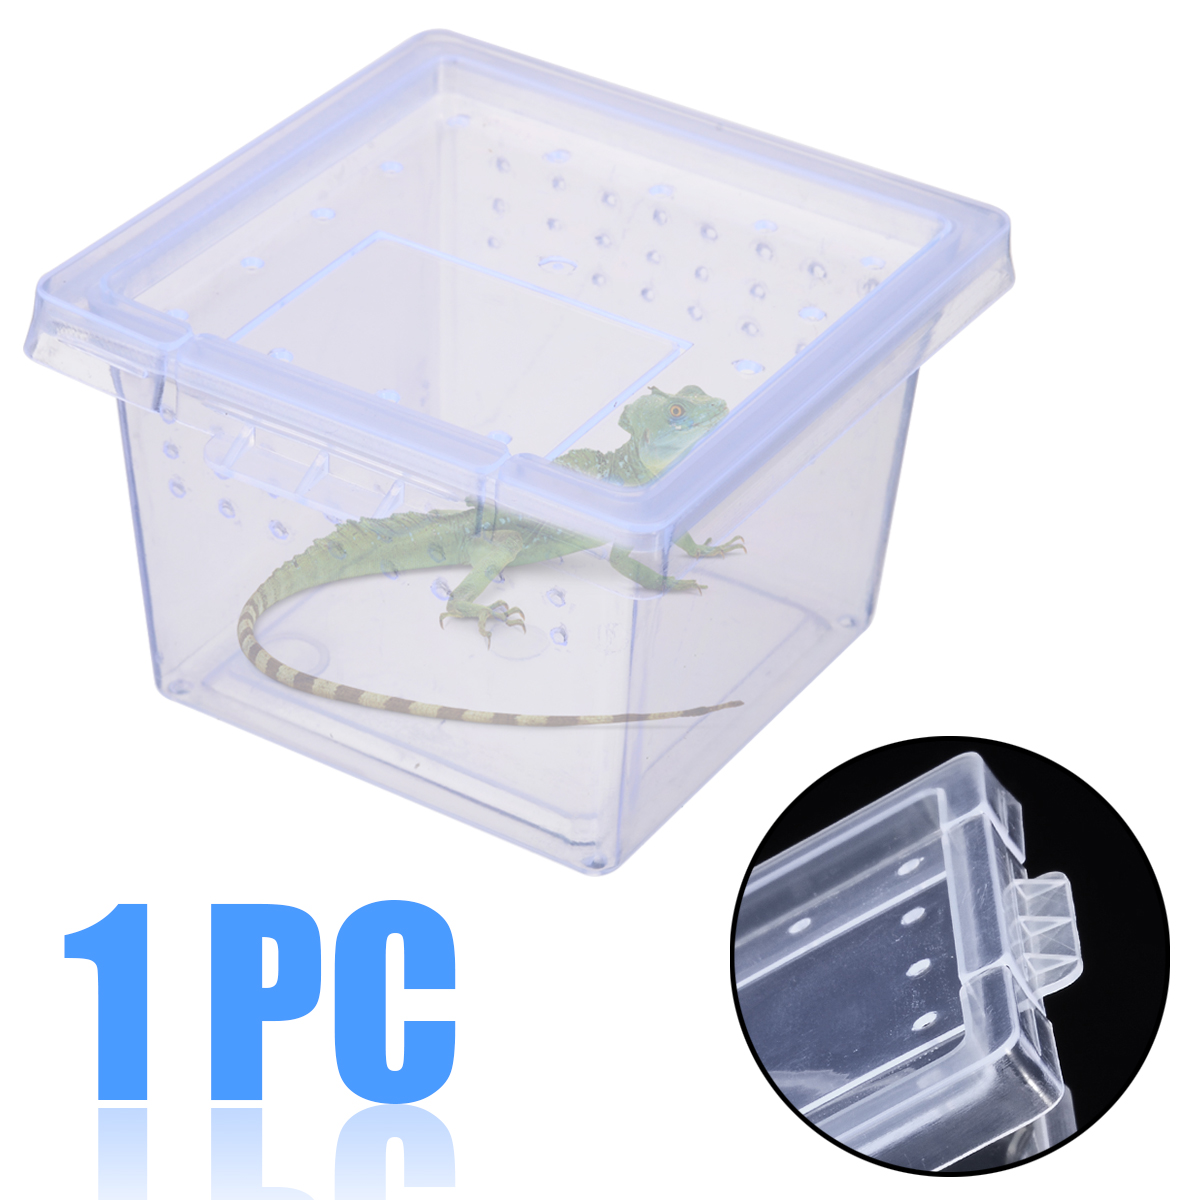 6.8*4.5*5.5cm Plastic Reptiles Box Clear Insect Terrarium Transport Breeding Live Food Feeding Box